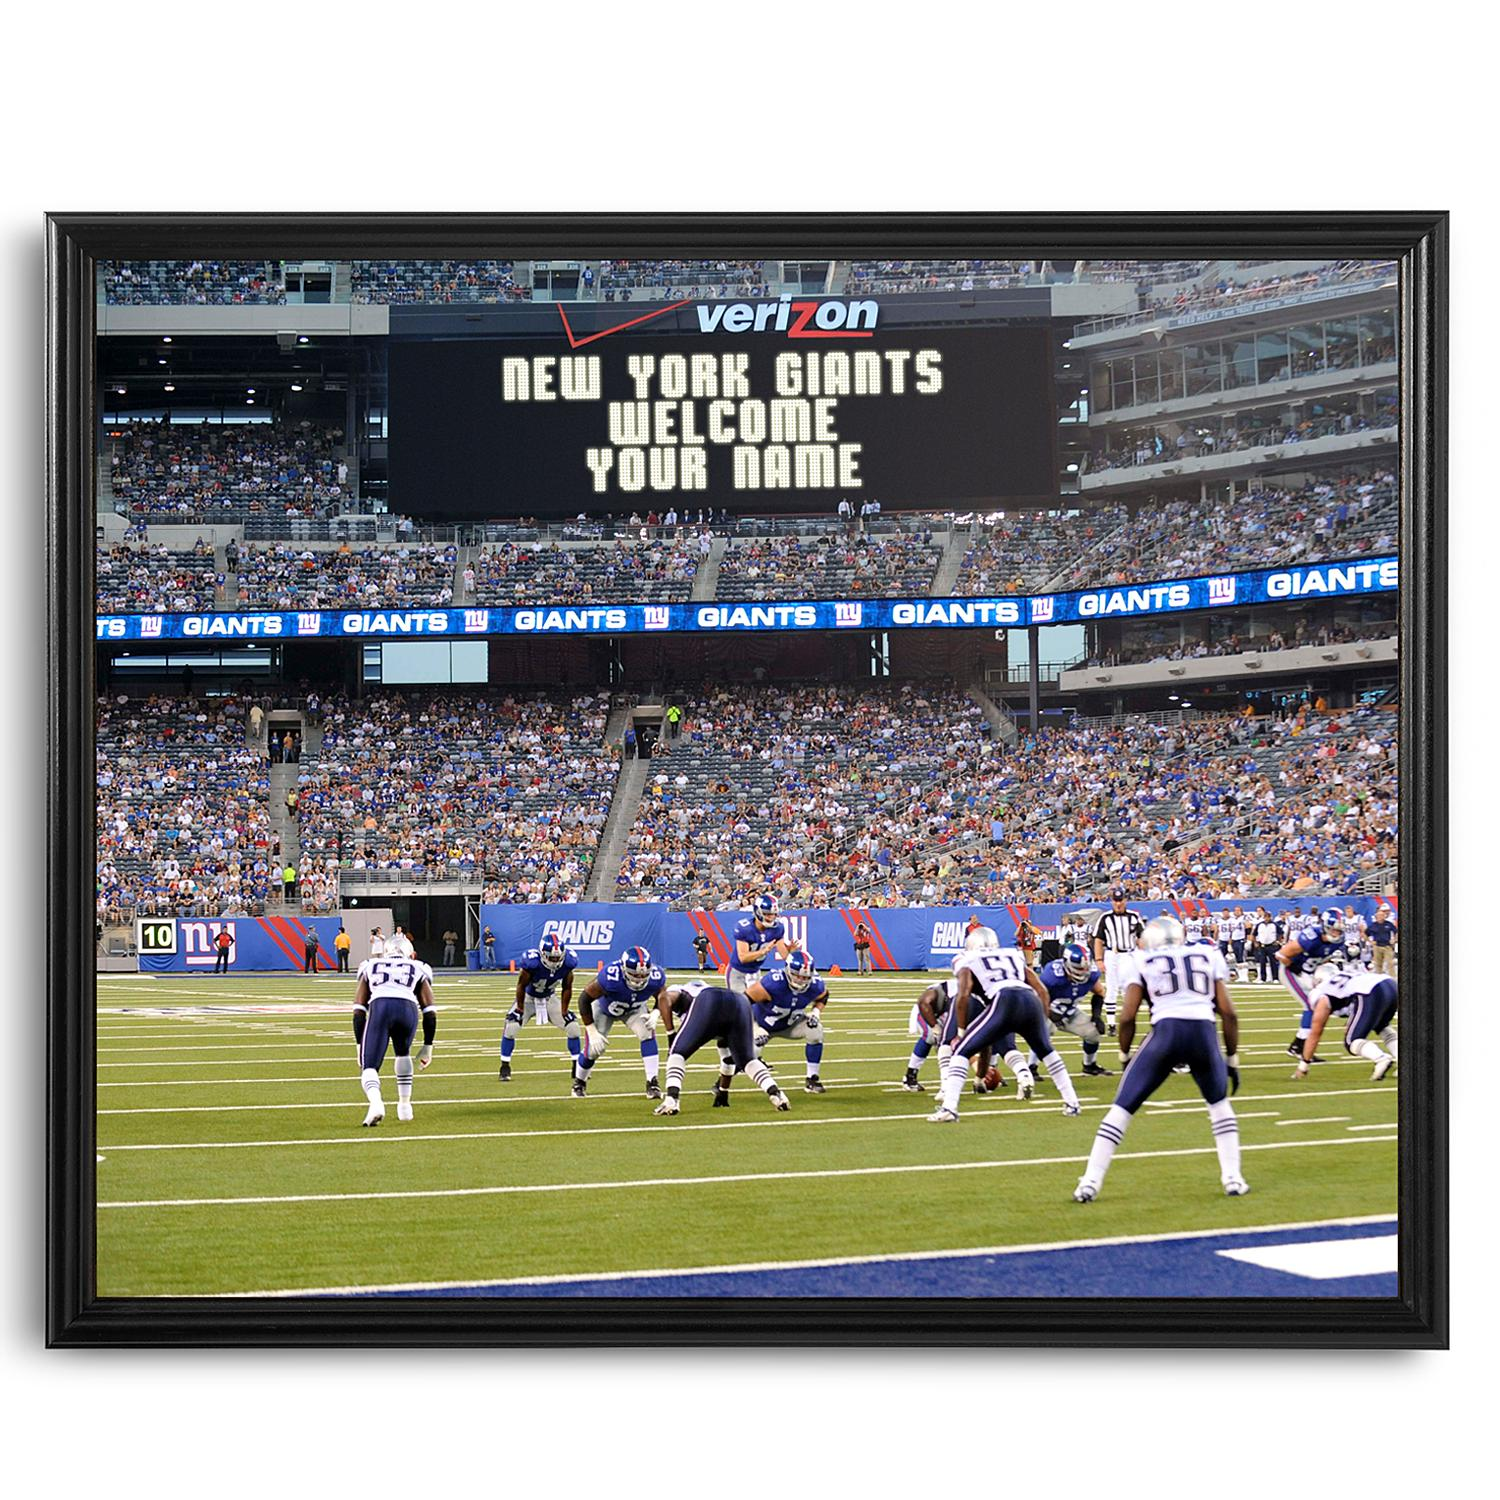 Personalized NFL Scoreboard New York Giants 16x20 Canvas - Personal  Creations Gifts 3ba2346ae